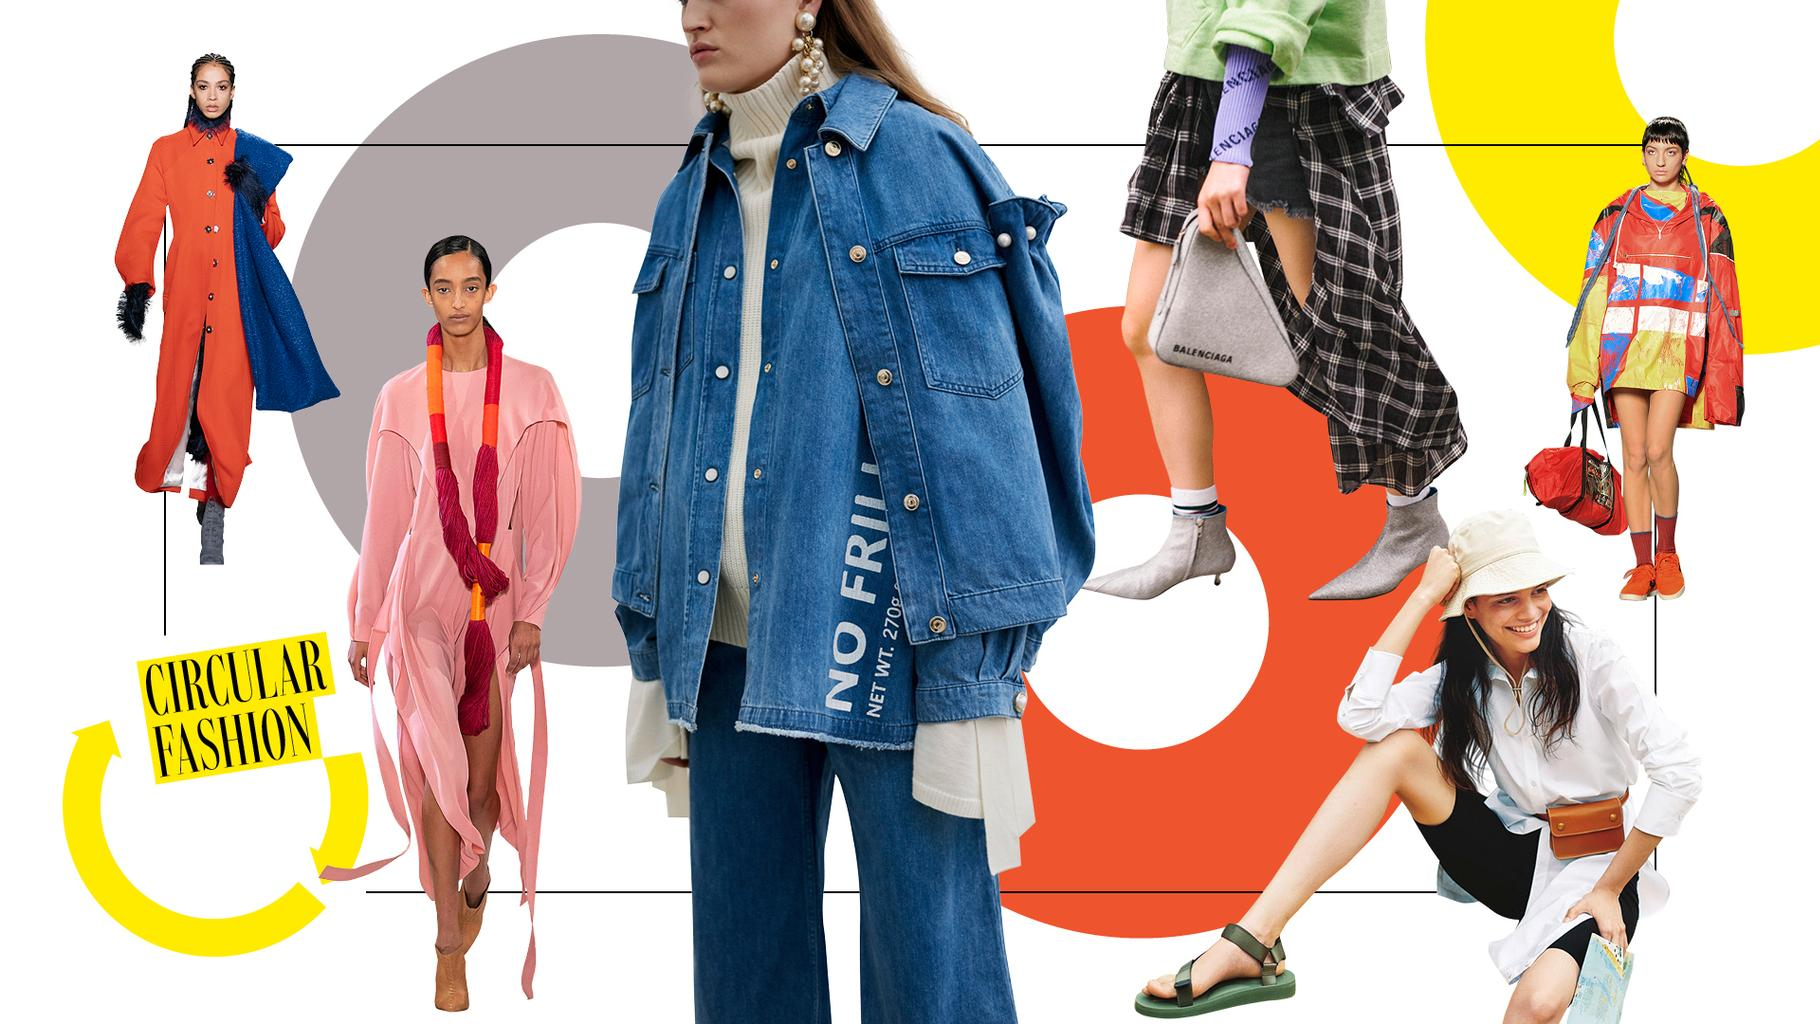 This Is Why It's Time to Get on Board With Circular Fashion